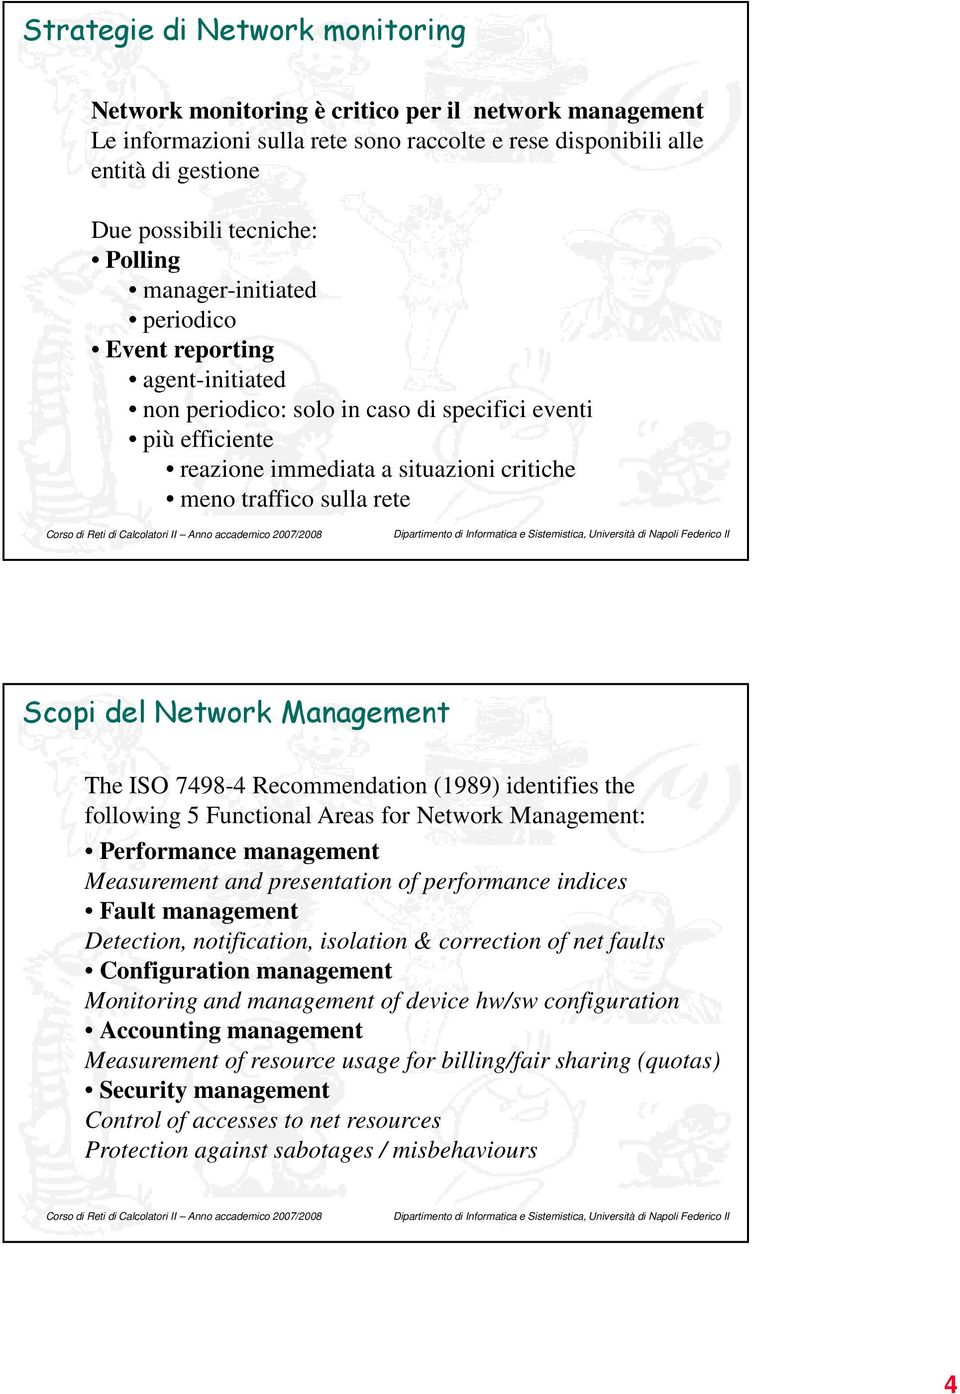 Scopi del Network Management The ISO 7498-4 Recommendation (1989) identifies the following 5 Functional Areas for Network Management: Performance management Measurement and presentation of